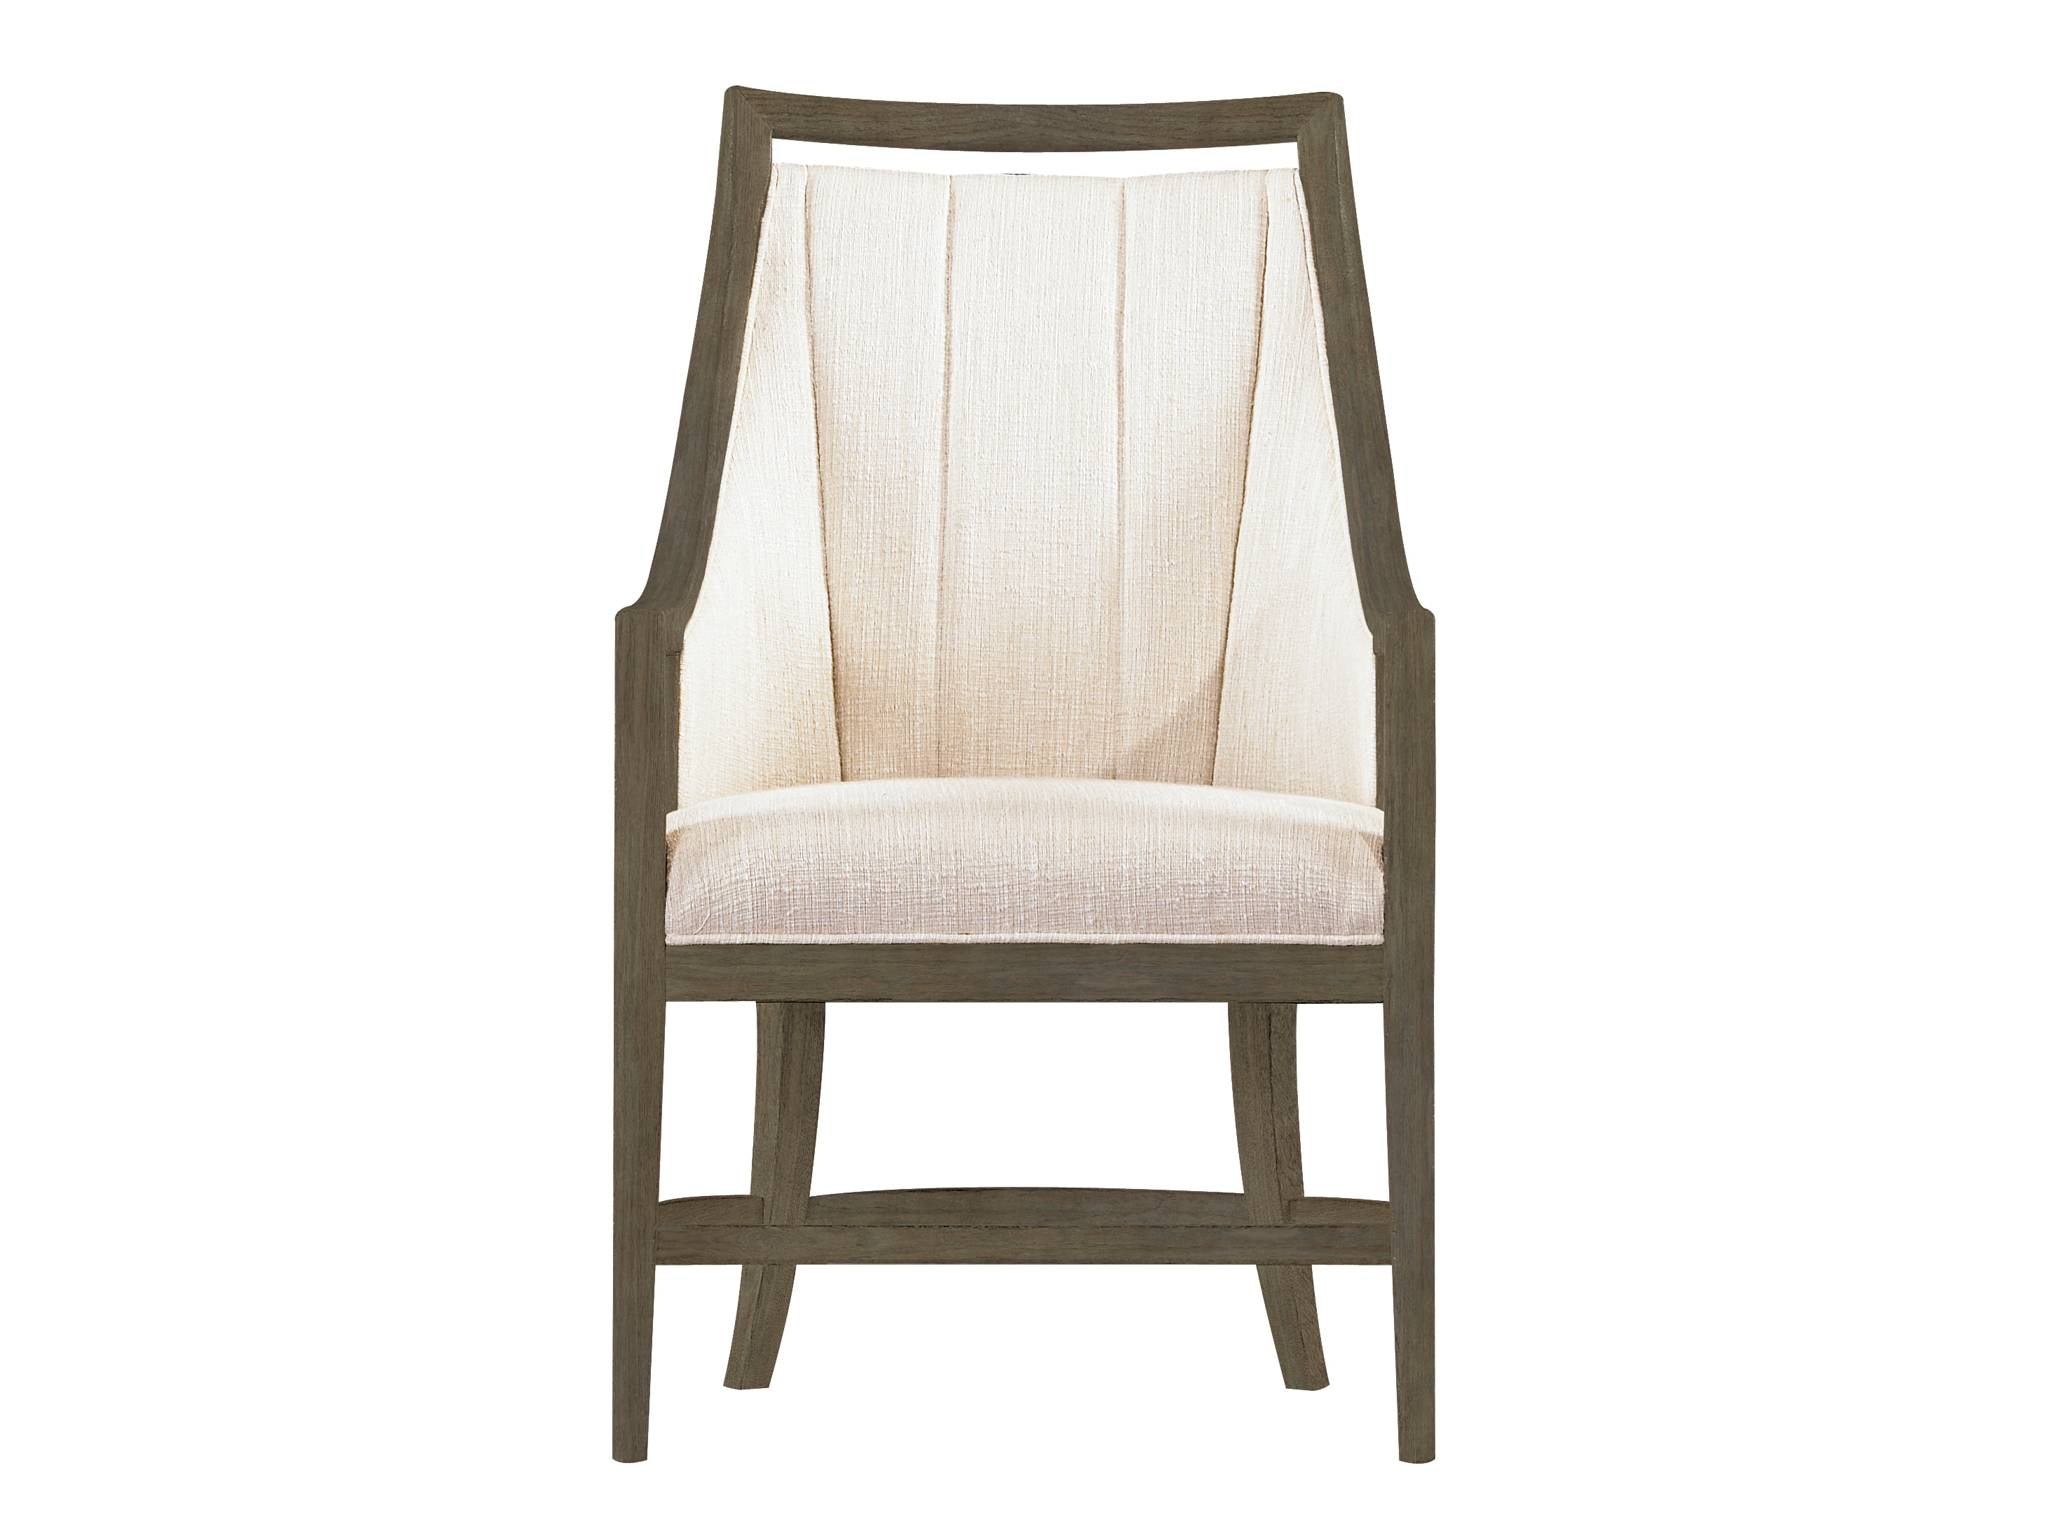 thebay furniture. Simple Furniture Coastal Living Dining Room By The Bay Host Chair 0623175 At Norris  Furniture To Thebay I